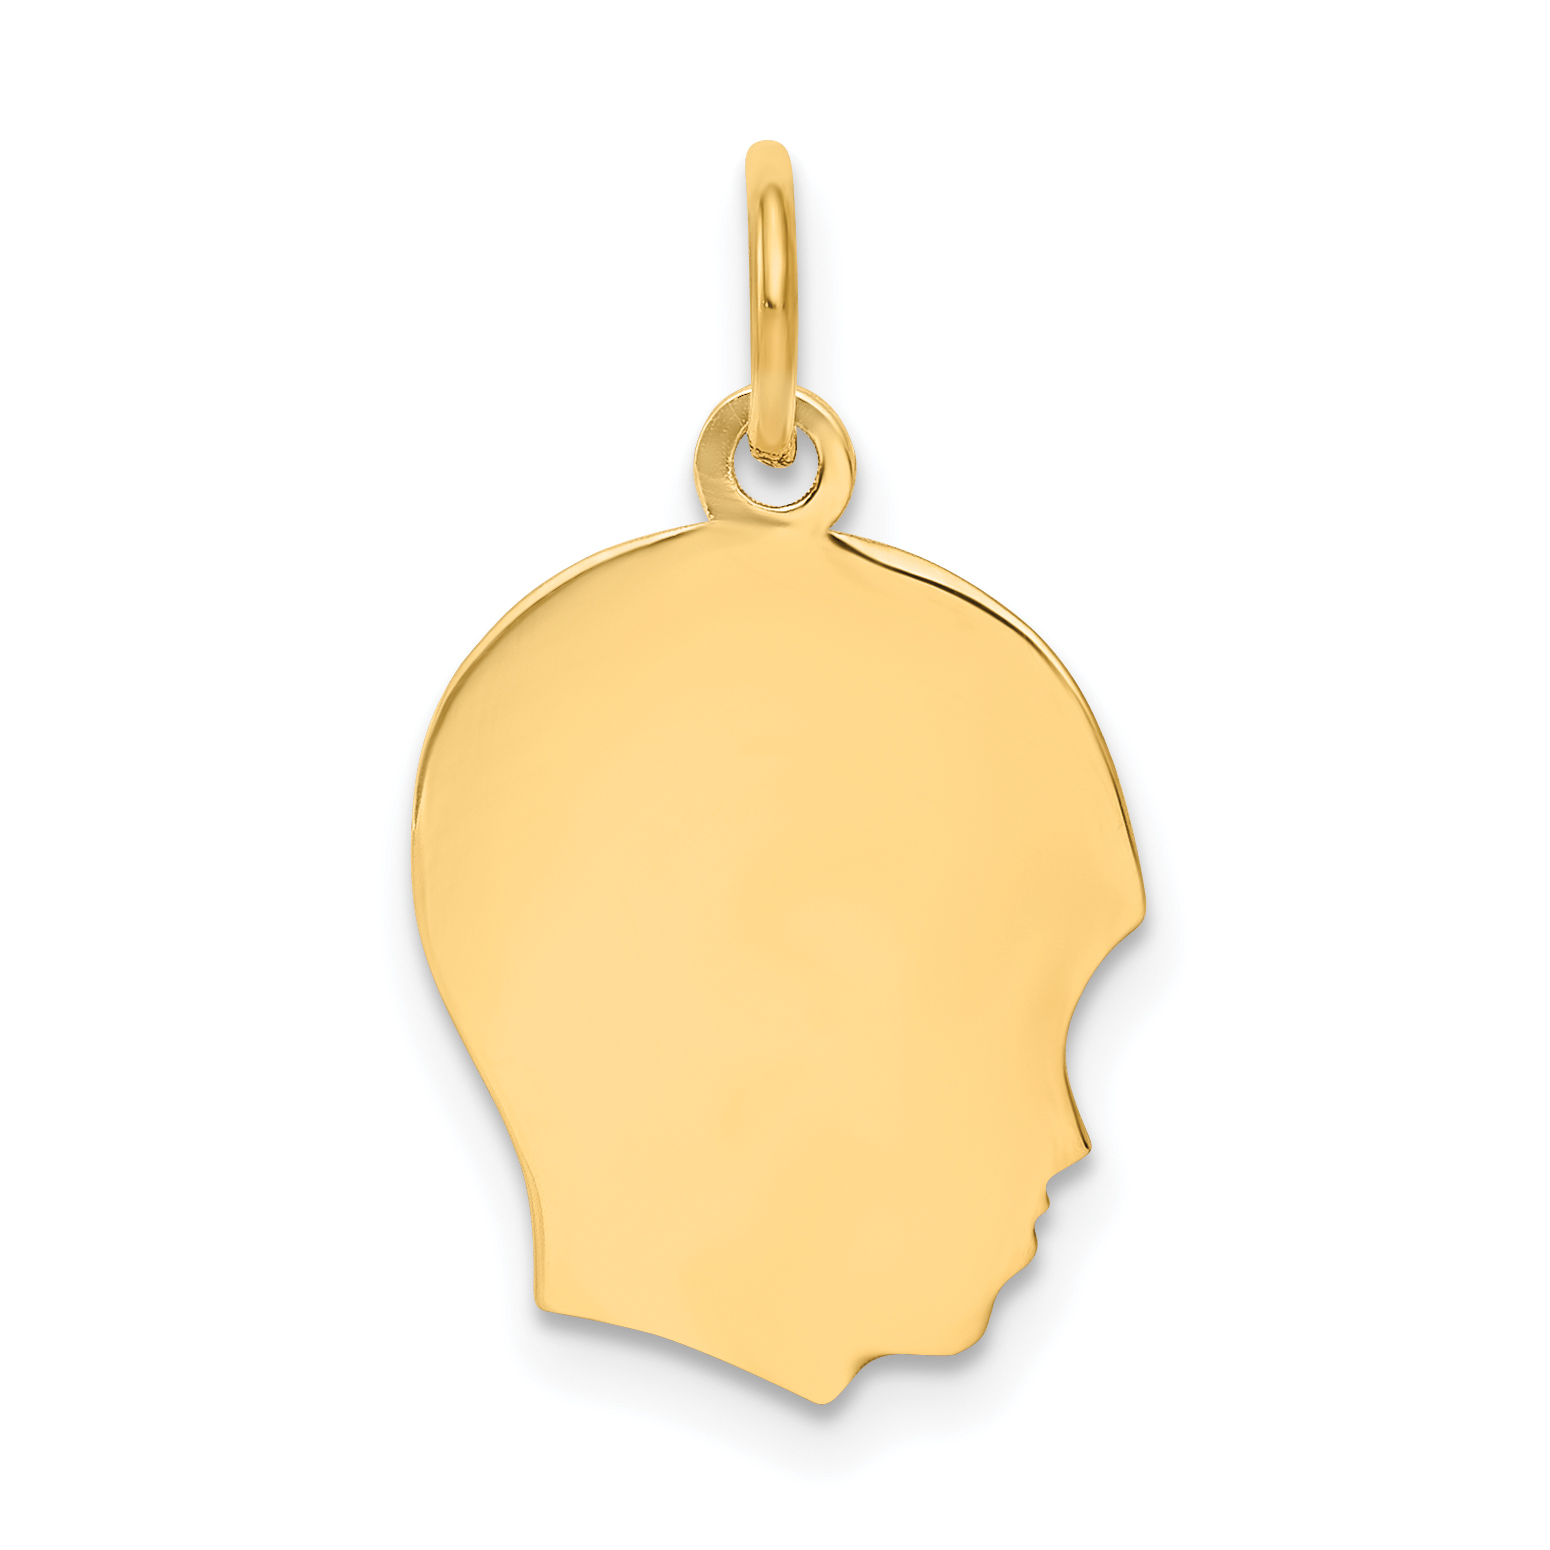 The Kids Collection 14K Yellow Gold High Polish Finish Mini Boy Charm Pendant